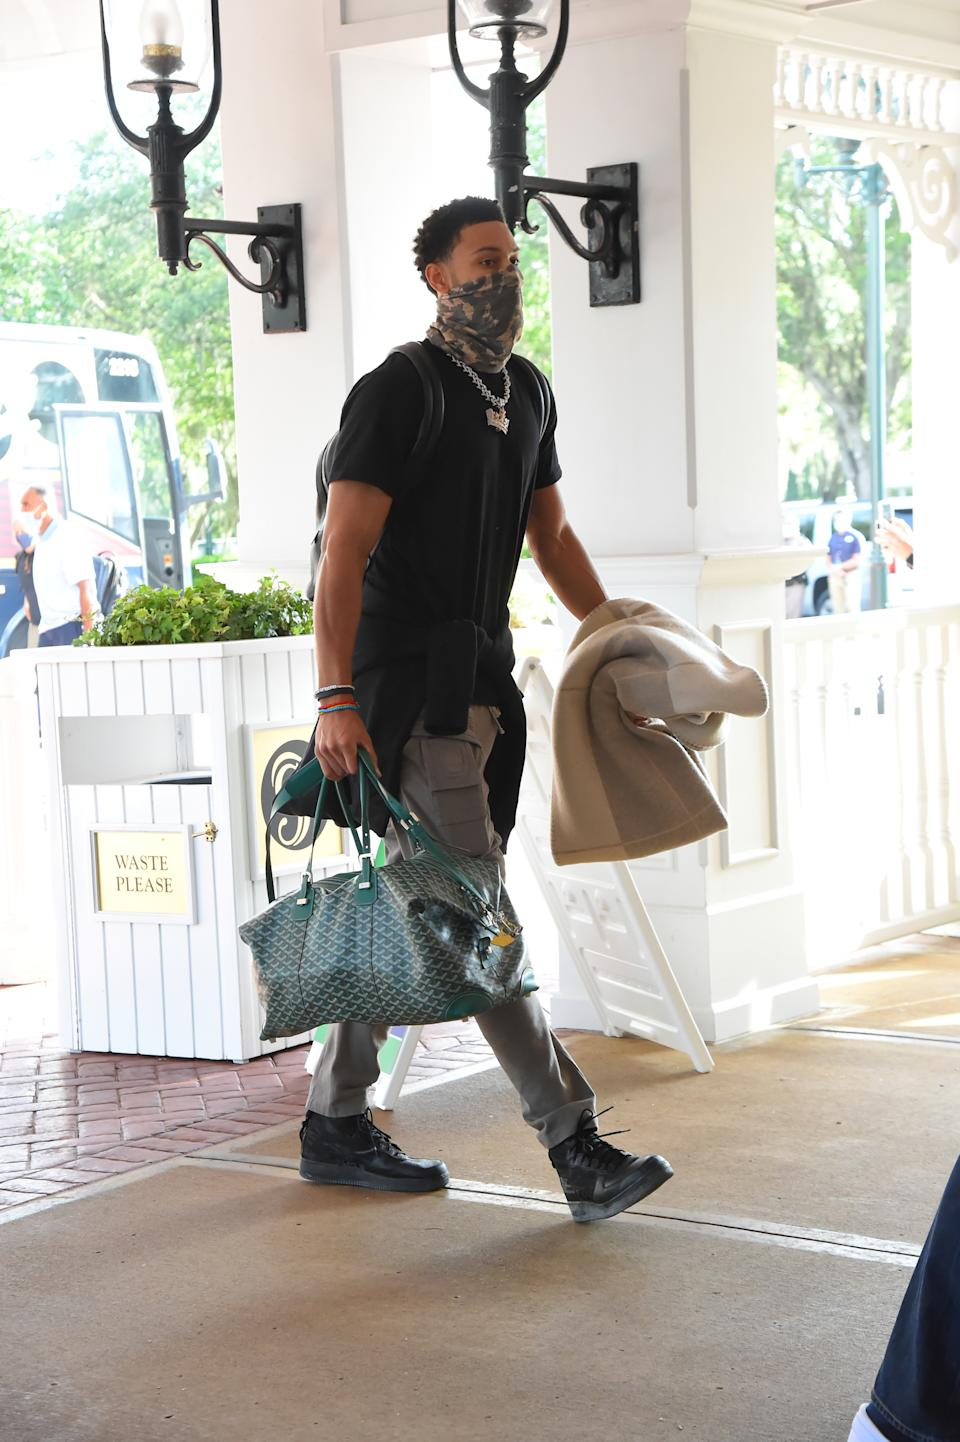 Ben Simmons of the Philadelphia 76ers arrives at the hotel as part of the NBA Restart 2020 on July 9, 2020 in Orlando, Florida. (Photo by Bill Baptist/NBAE via Getty Images)